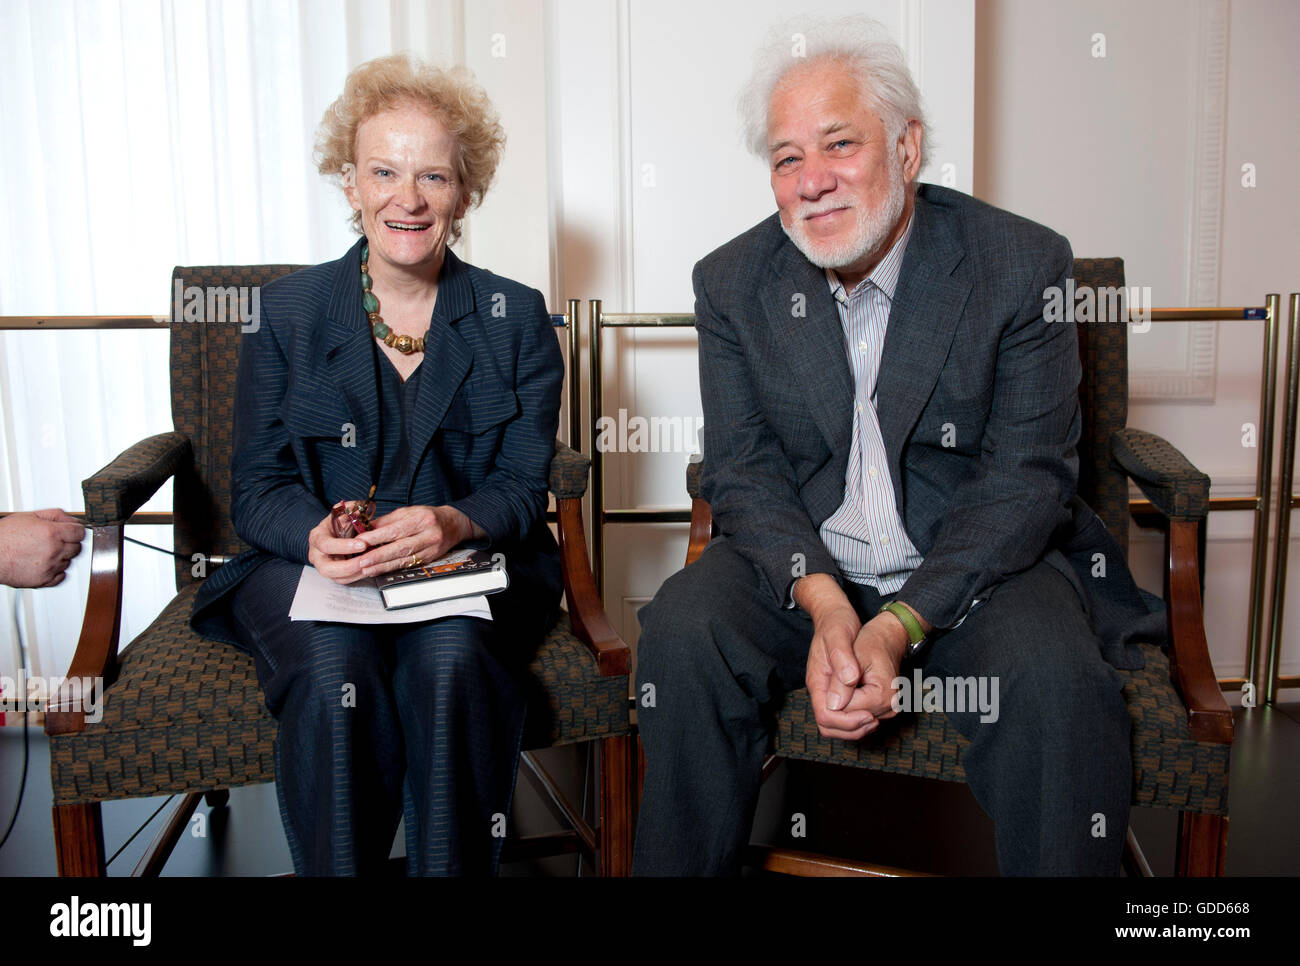 Royal Society of Literature acclaimed author Michael Ondaatje in conversation with Fiammetta Rocco at newly refurbished - Stock Image